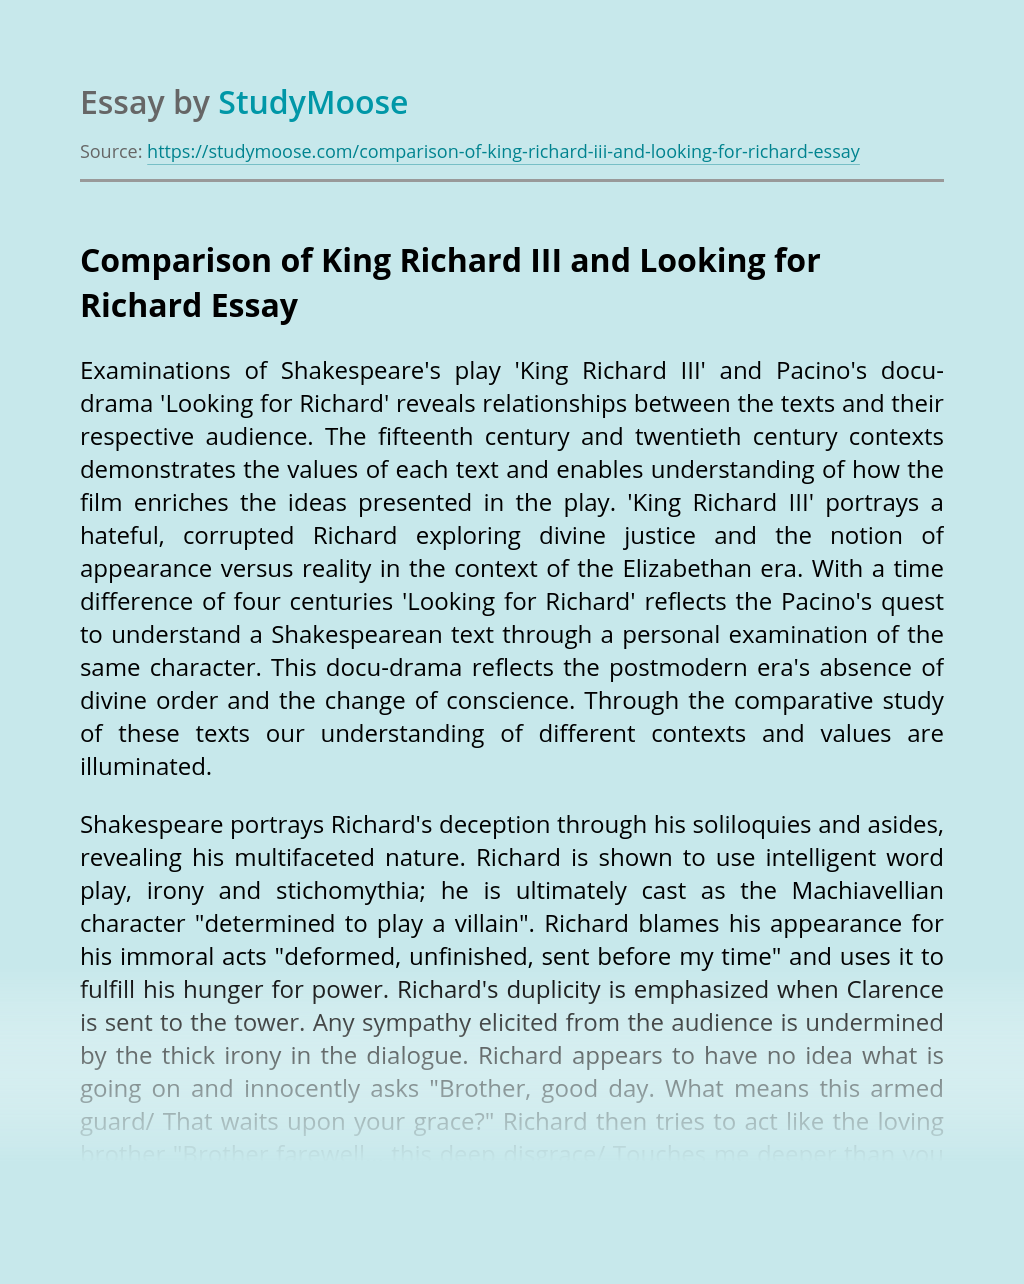 Comparison of King Richard III and Looking for Richard